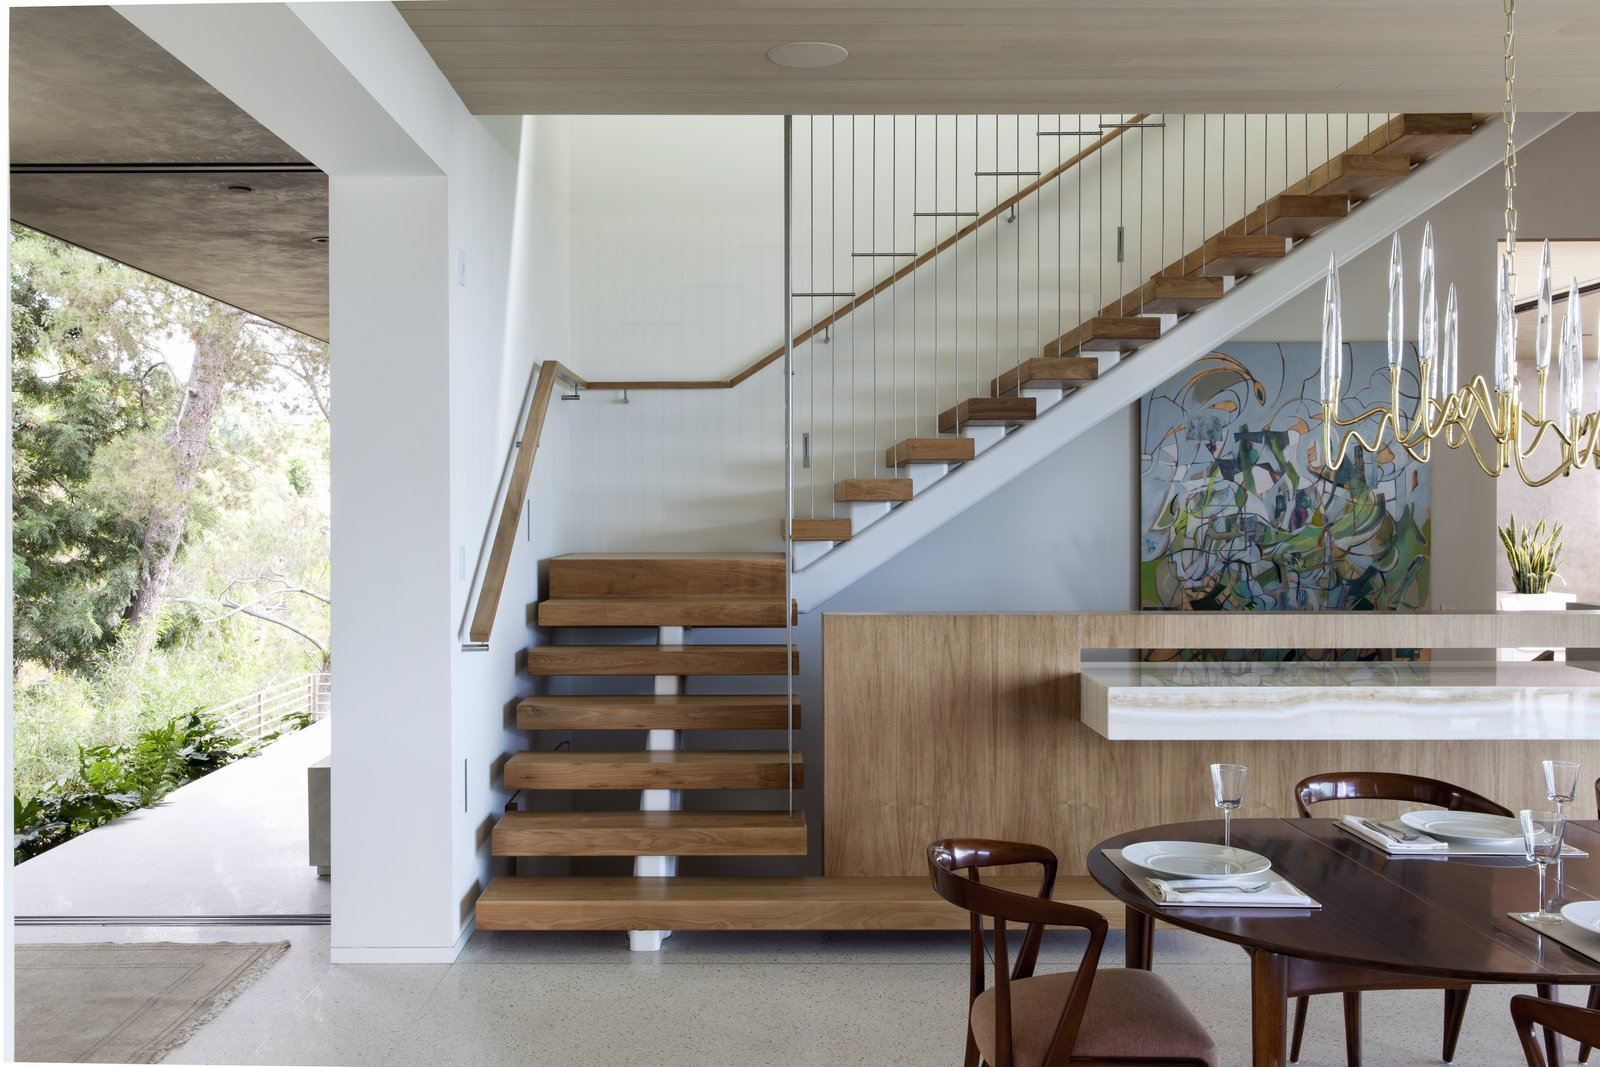 Tagged: Chair, Pendant Lighting, Staircase, Wood Tread, and Wood Railing. Summitridge by Marmol Radziner